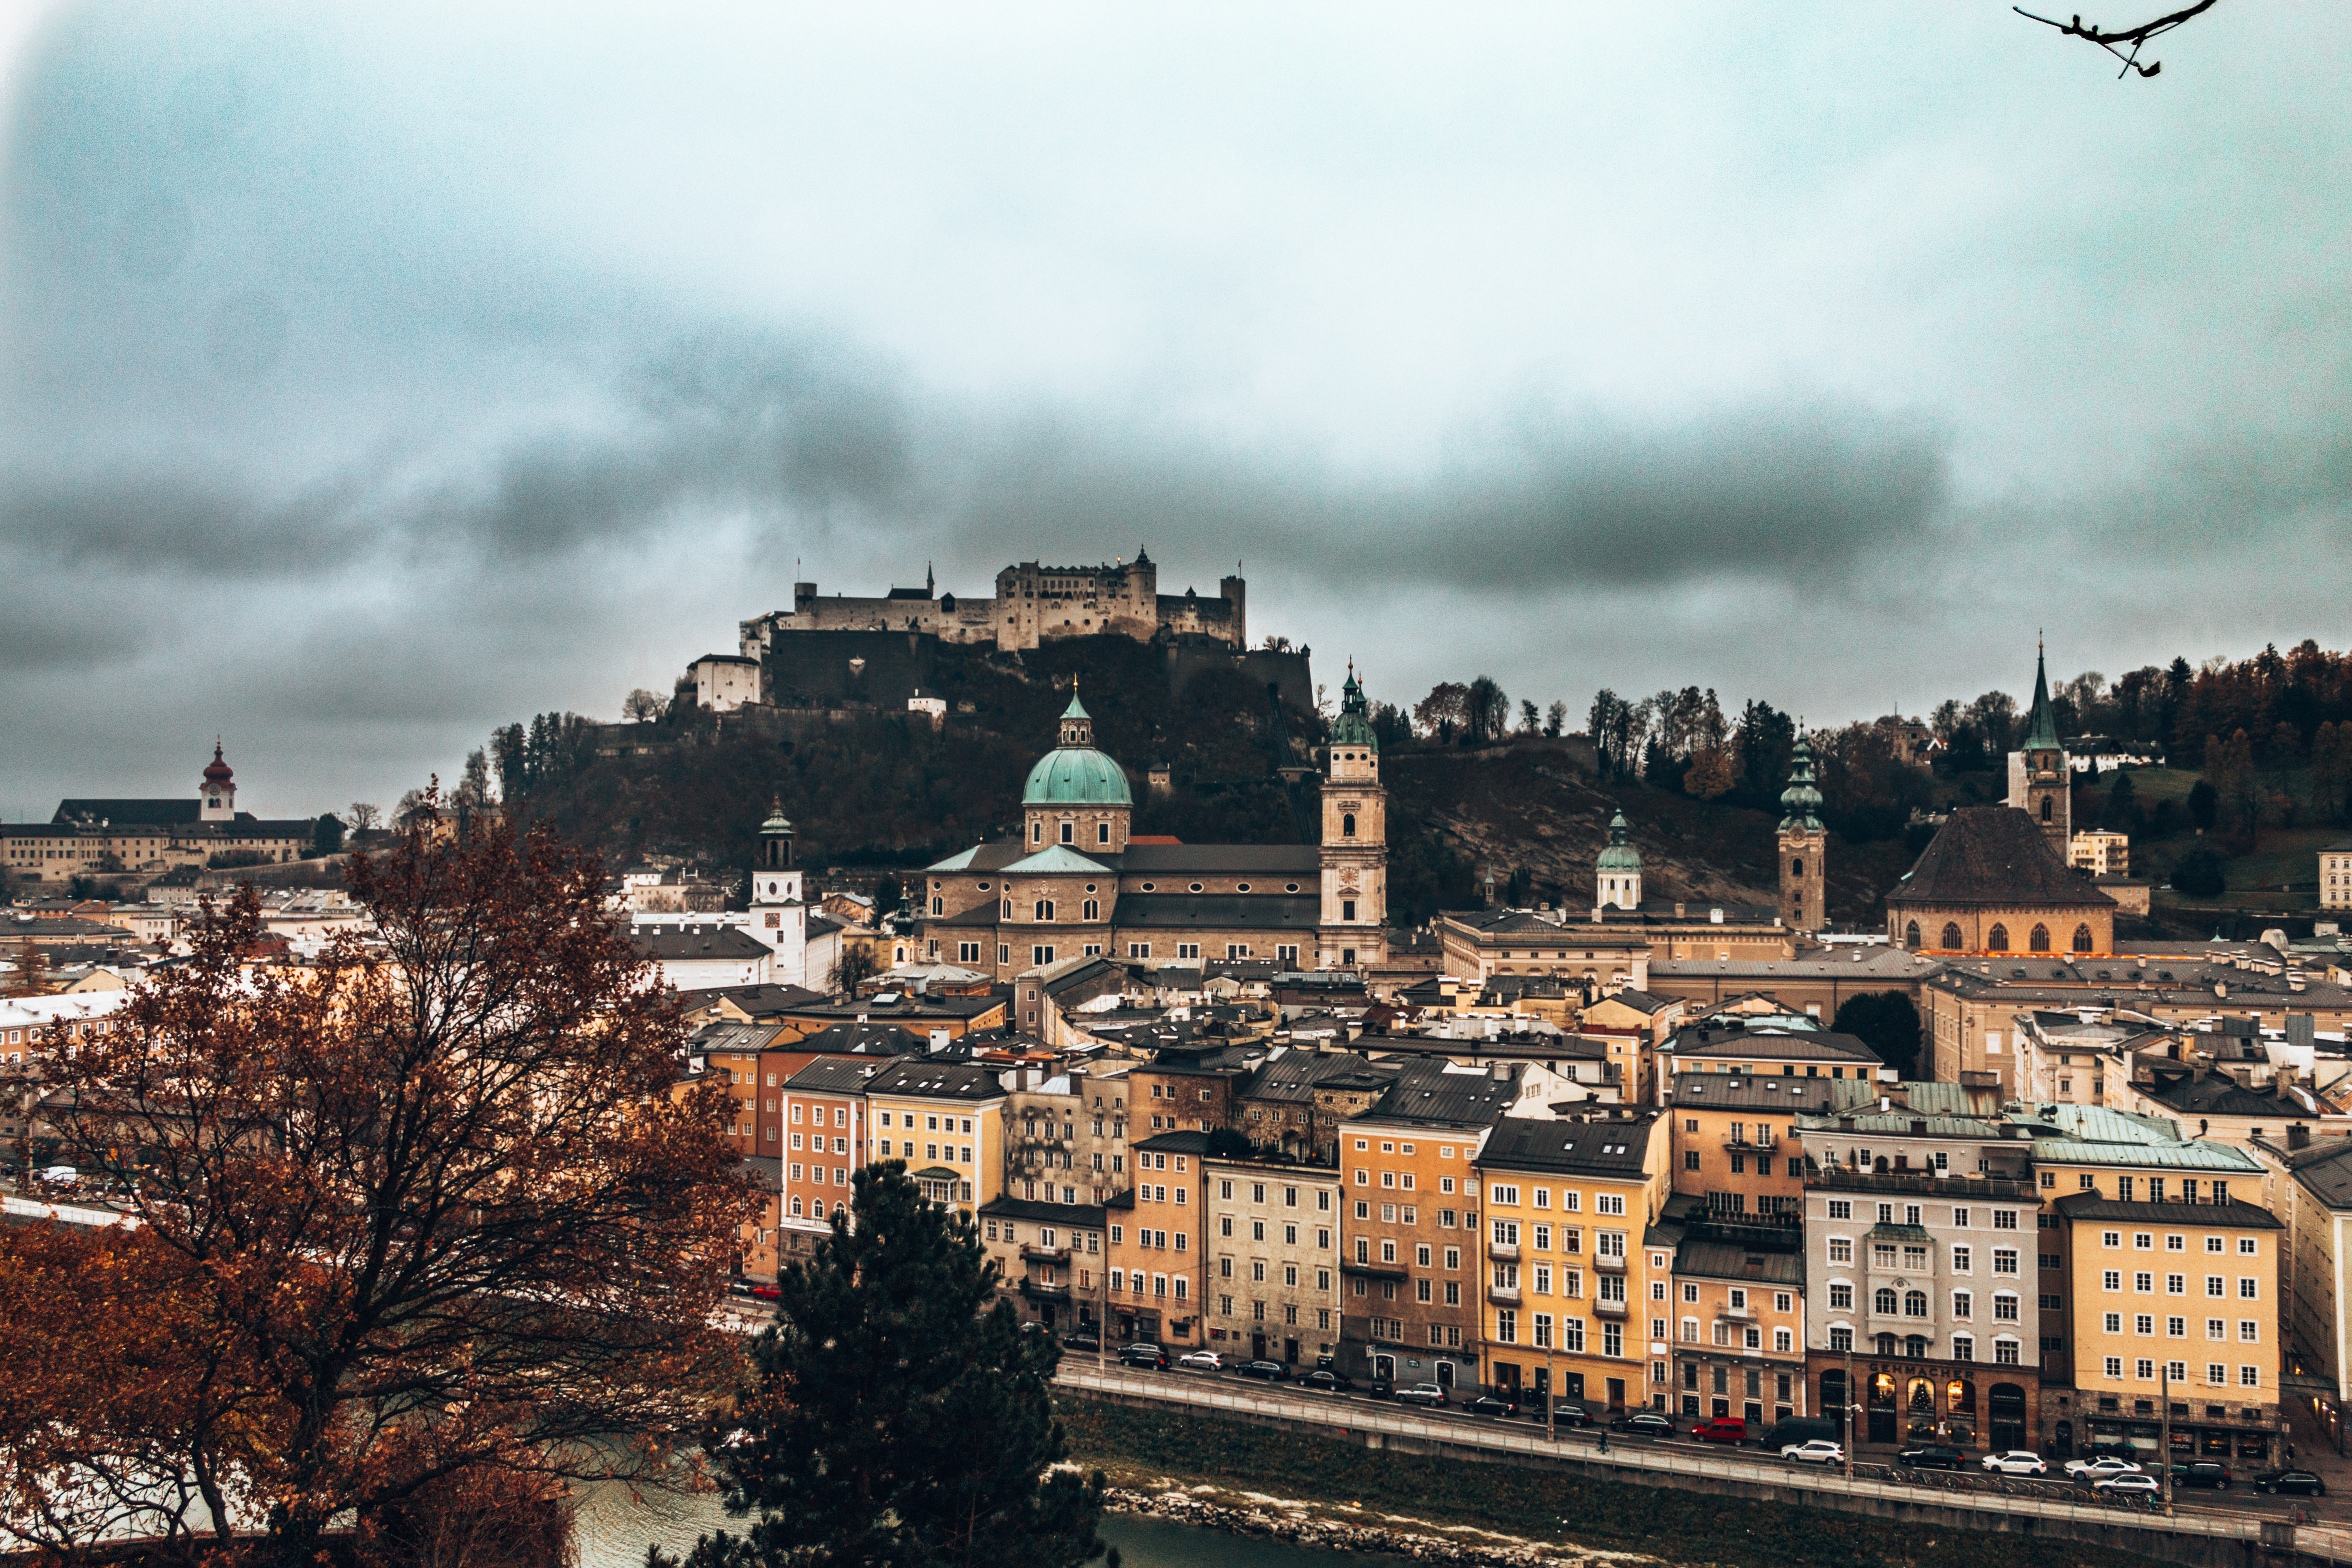 A view of the Hohensalzburg Fortress from the Kapuzinerg hill in Salzburg, Austria